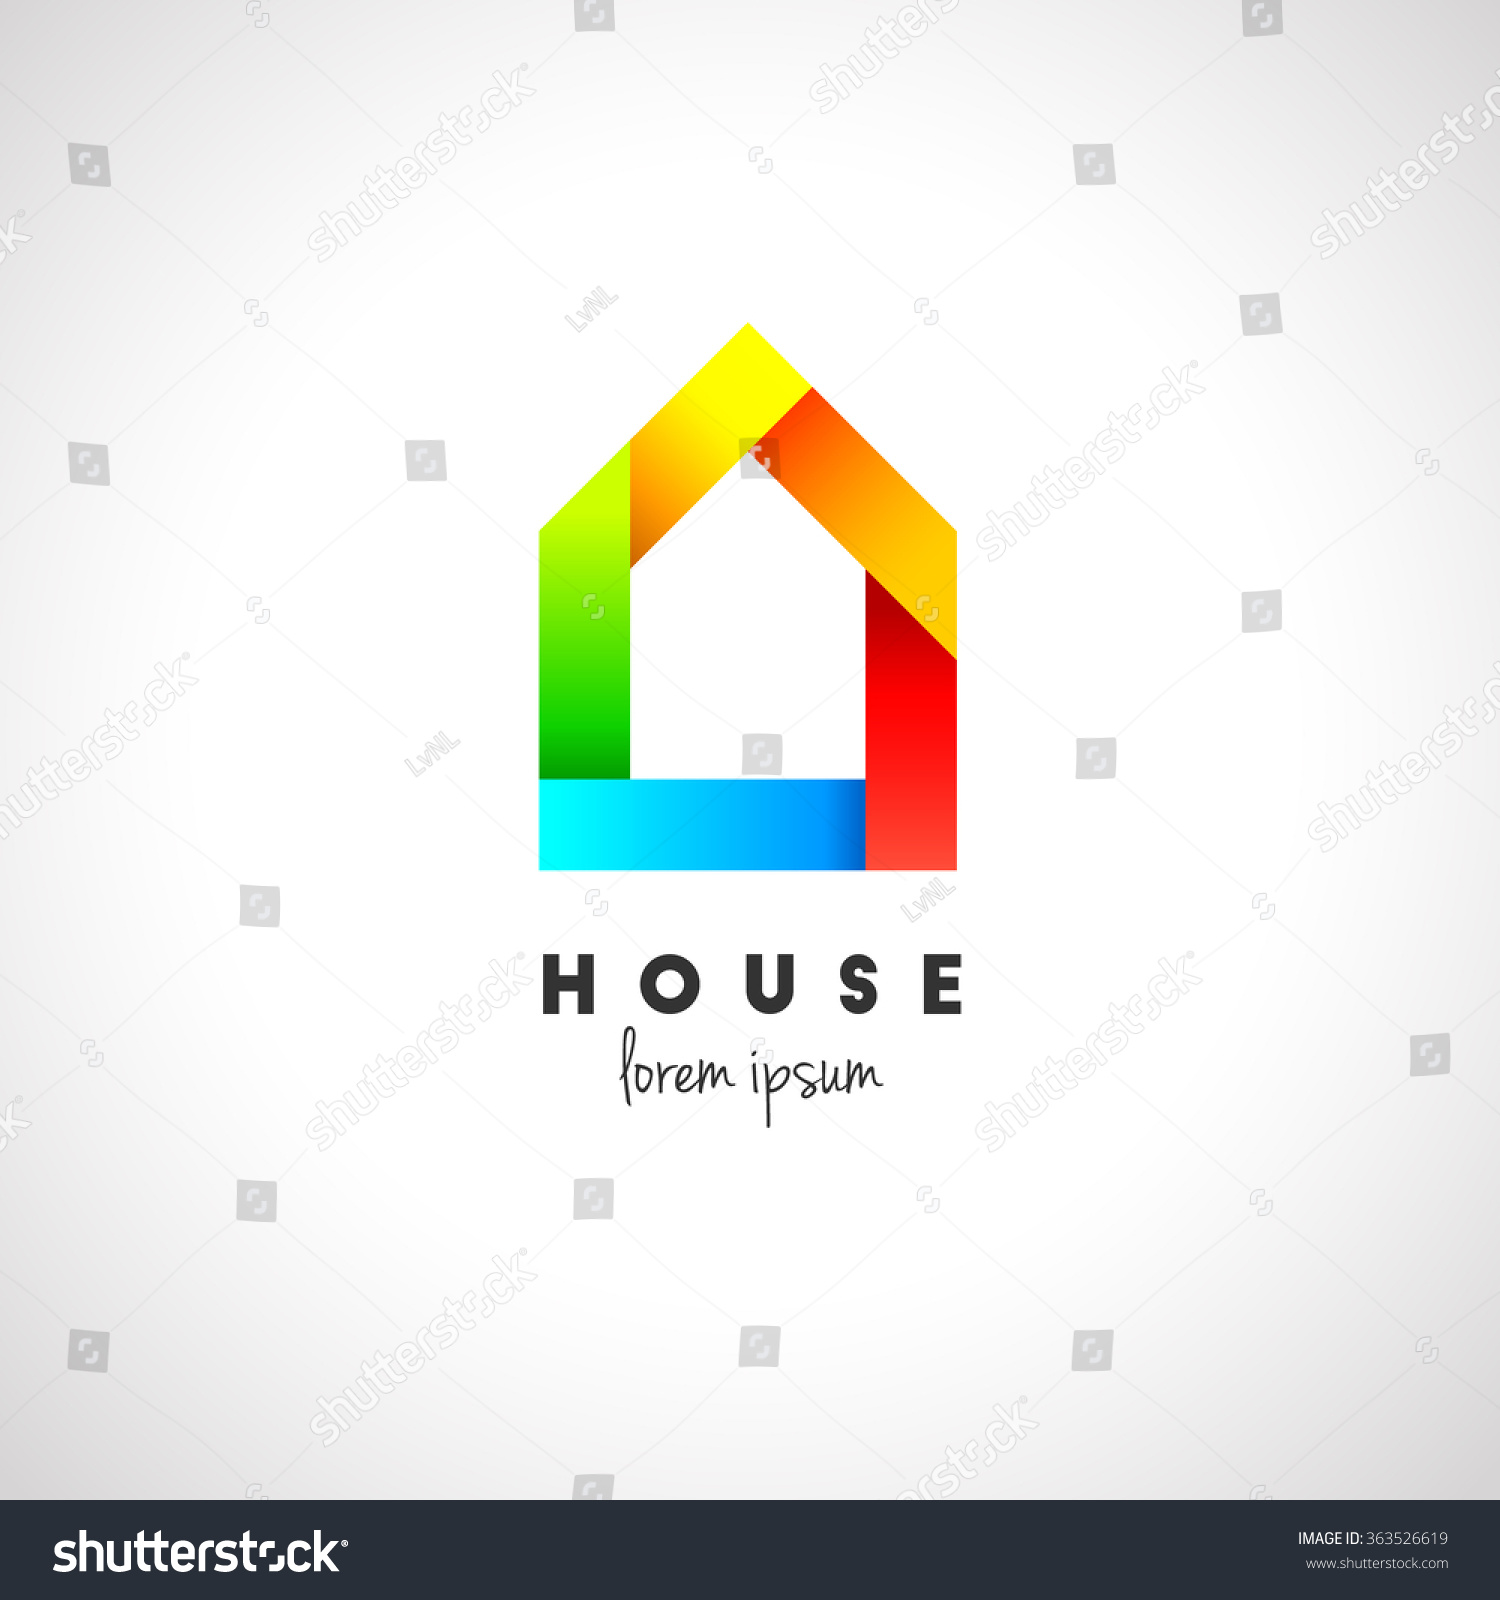 Creative house logo design modern style stock vector for Modern house logo